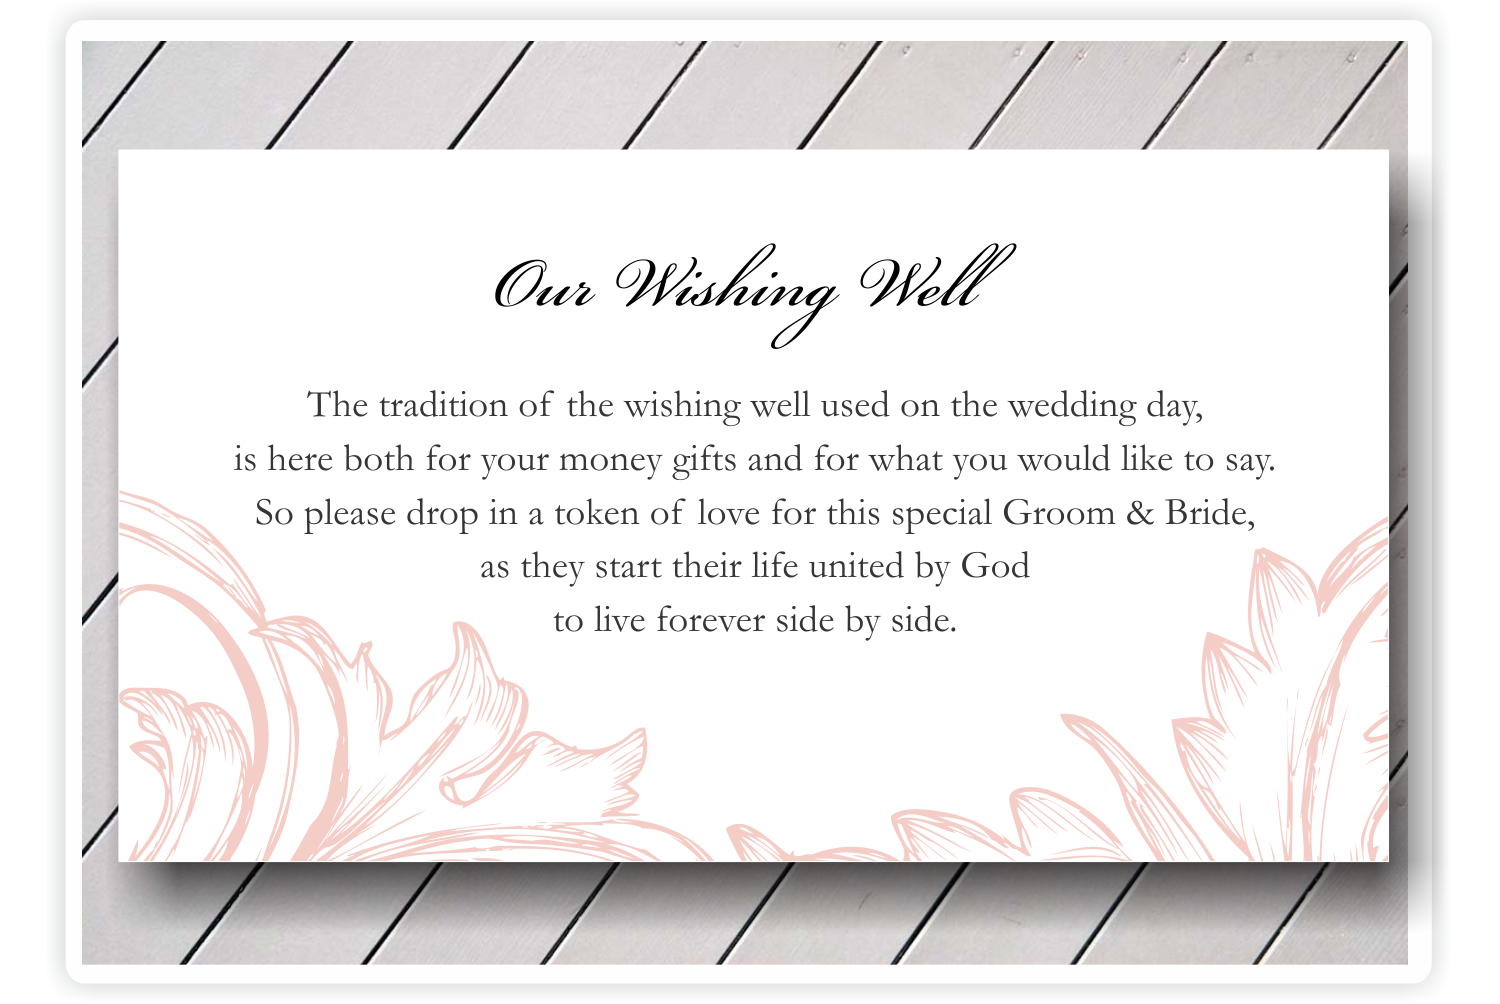 wedding invitation inserts asking for money | ... money. we have ...